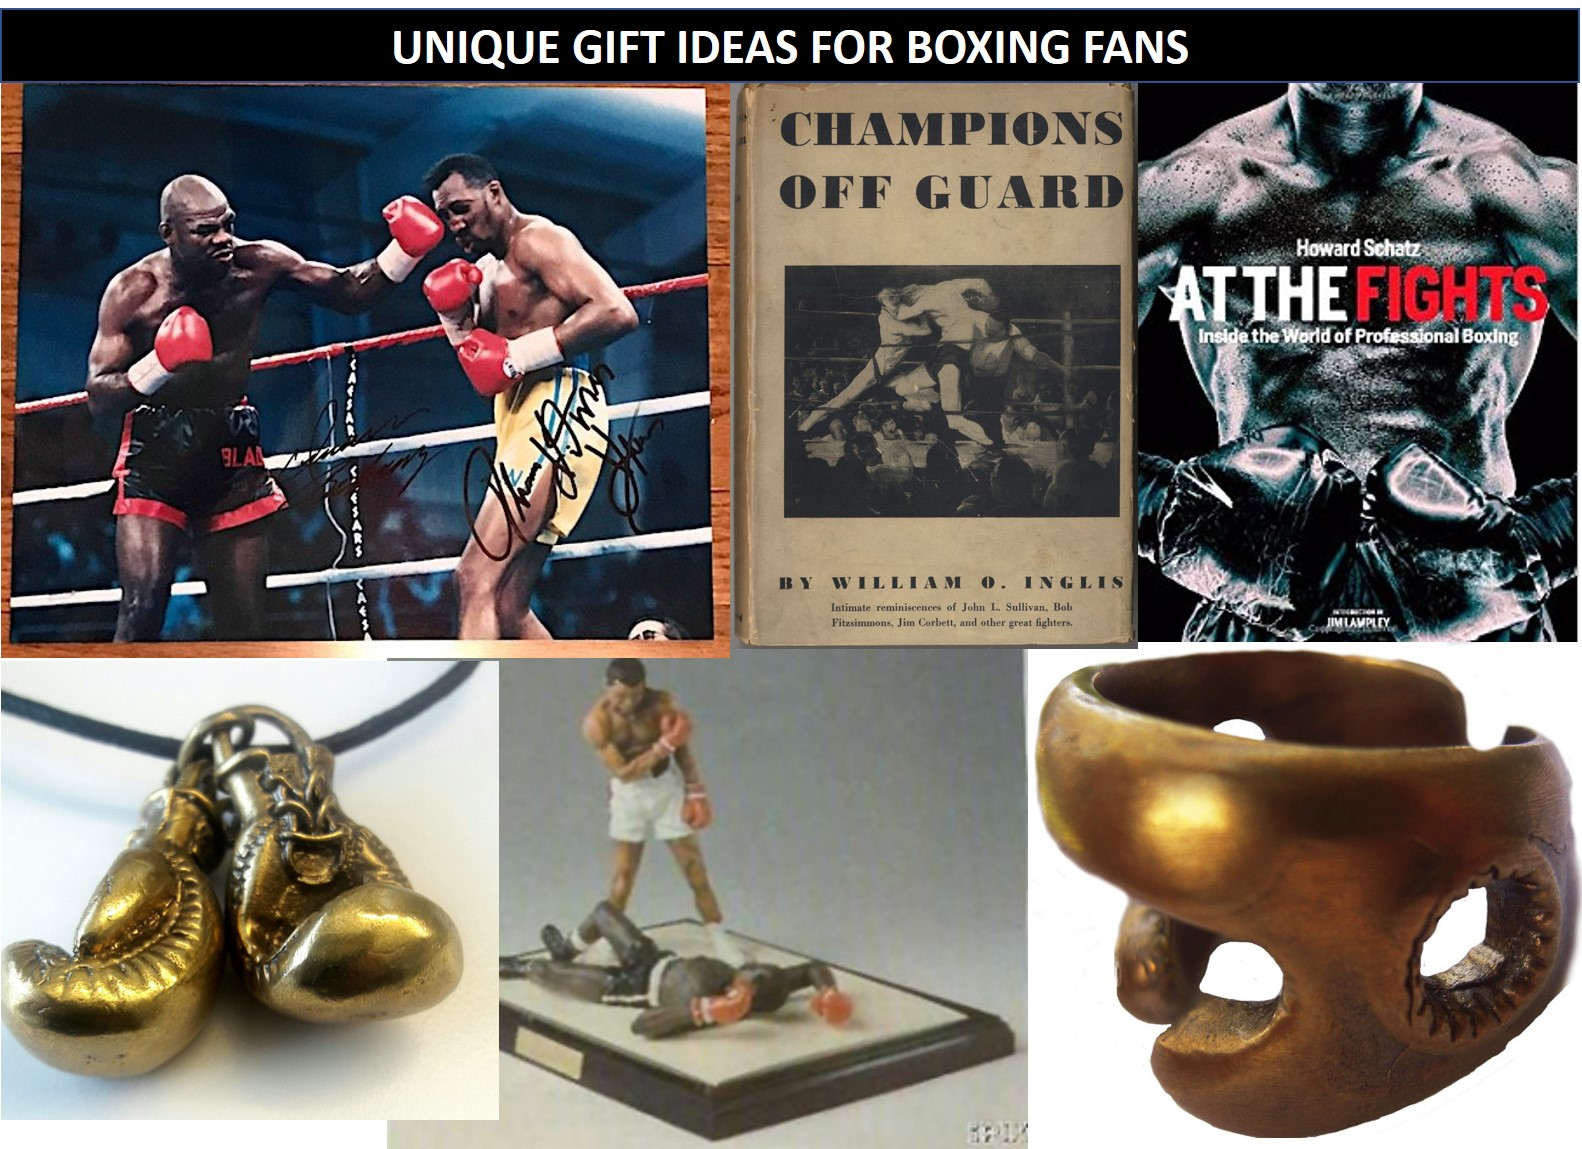 Unique Gift Ideas For Boxing Fans